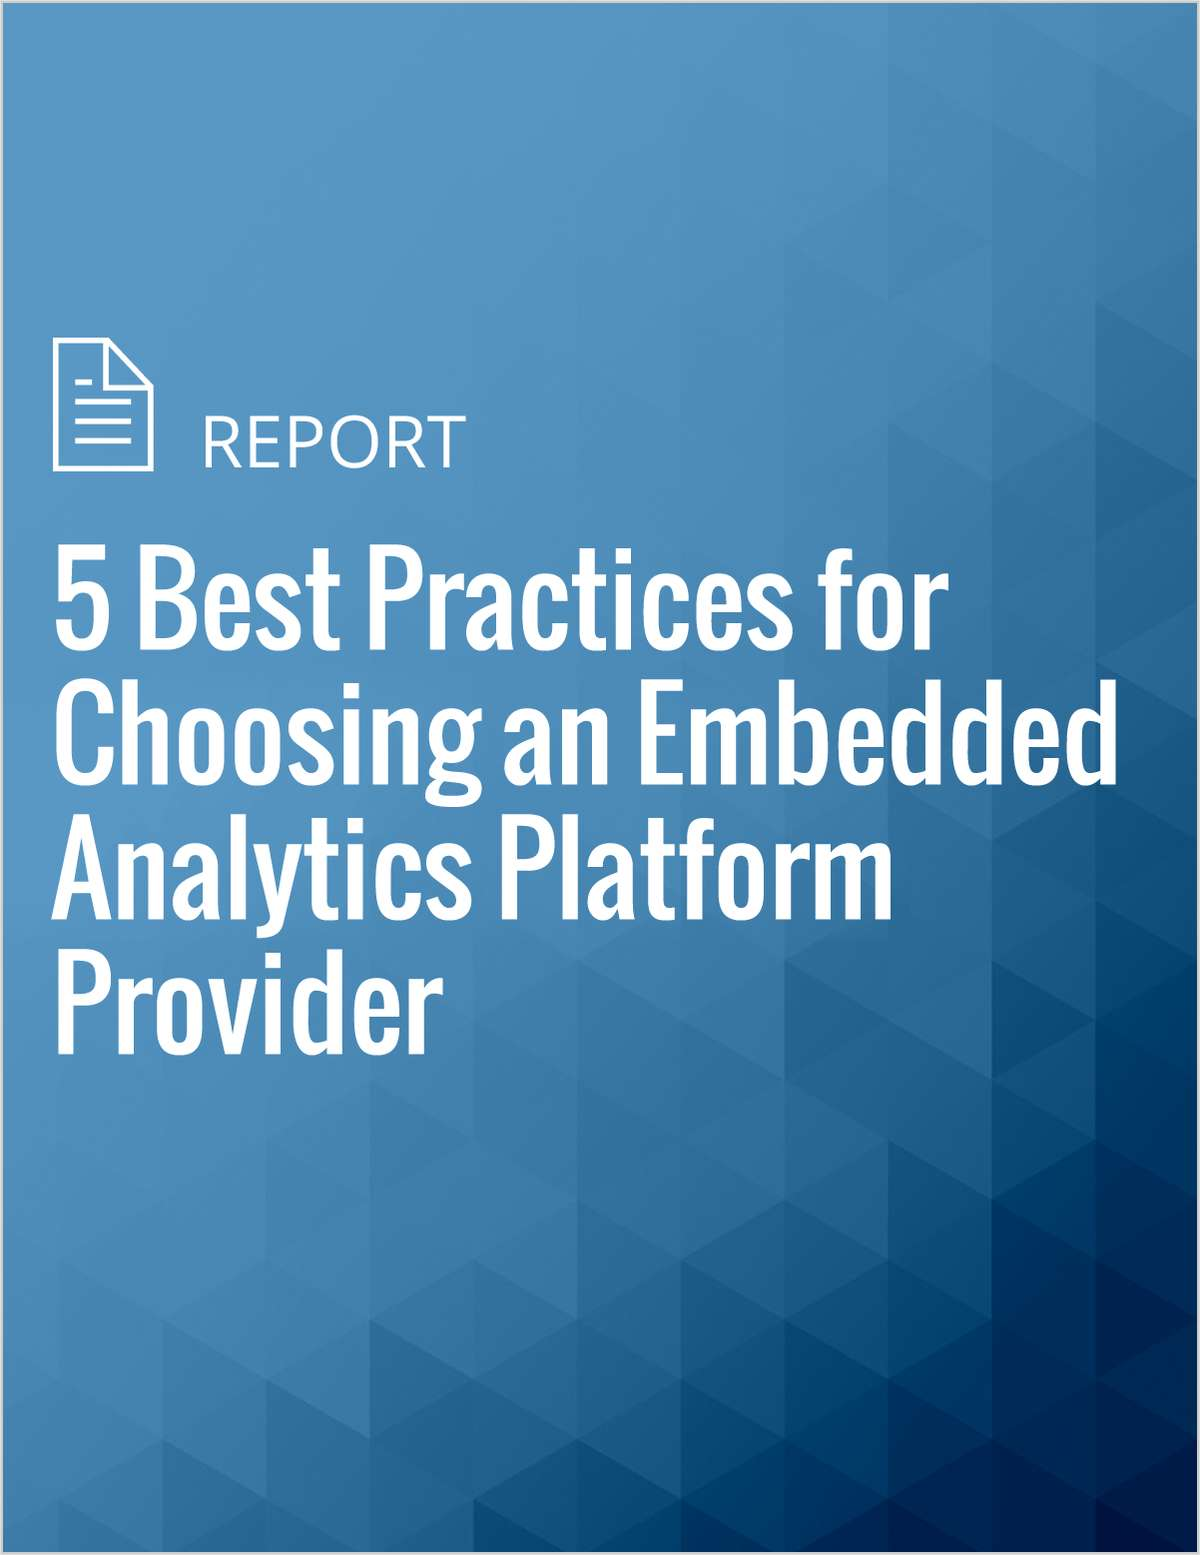 5 Best Practices for Choosing an Embedded Analytics Platform Provider